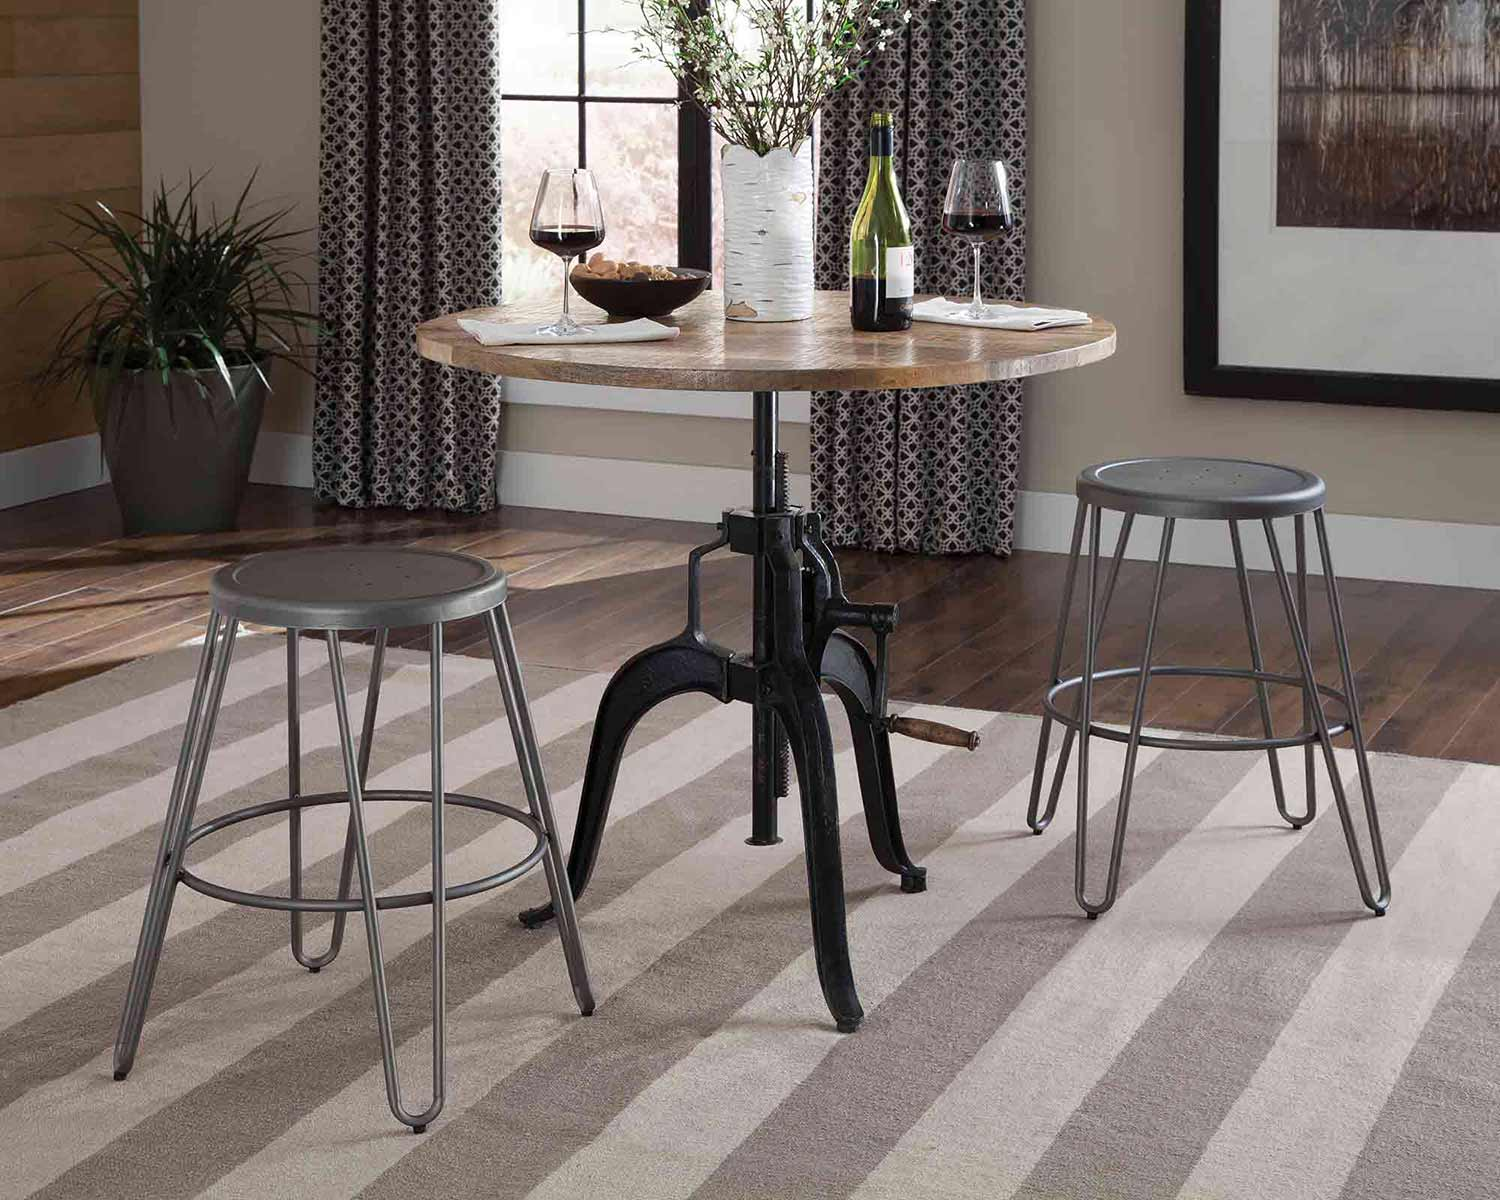 Coaster Galway Counter Height Dining Set - Natural